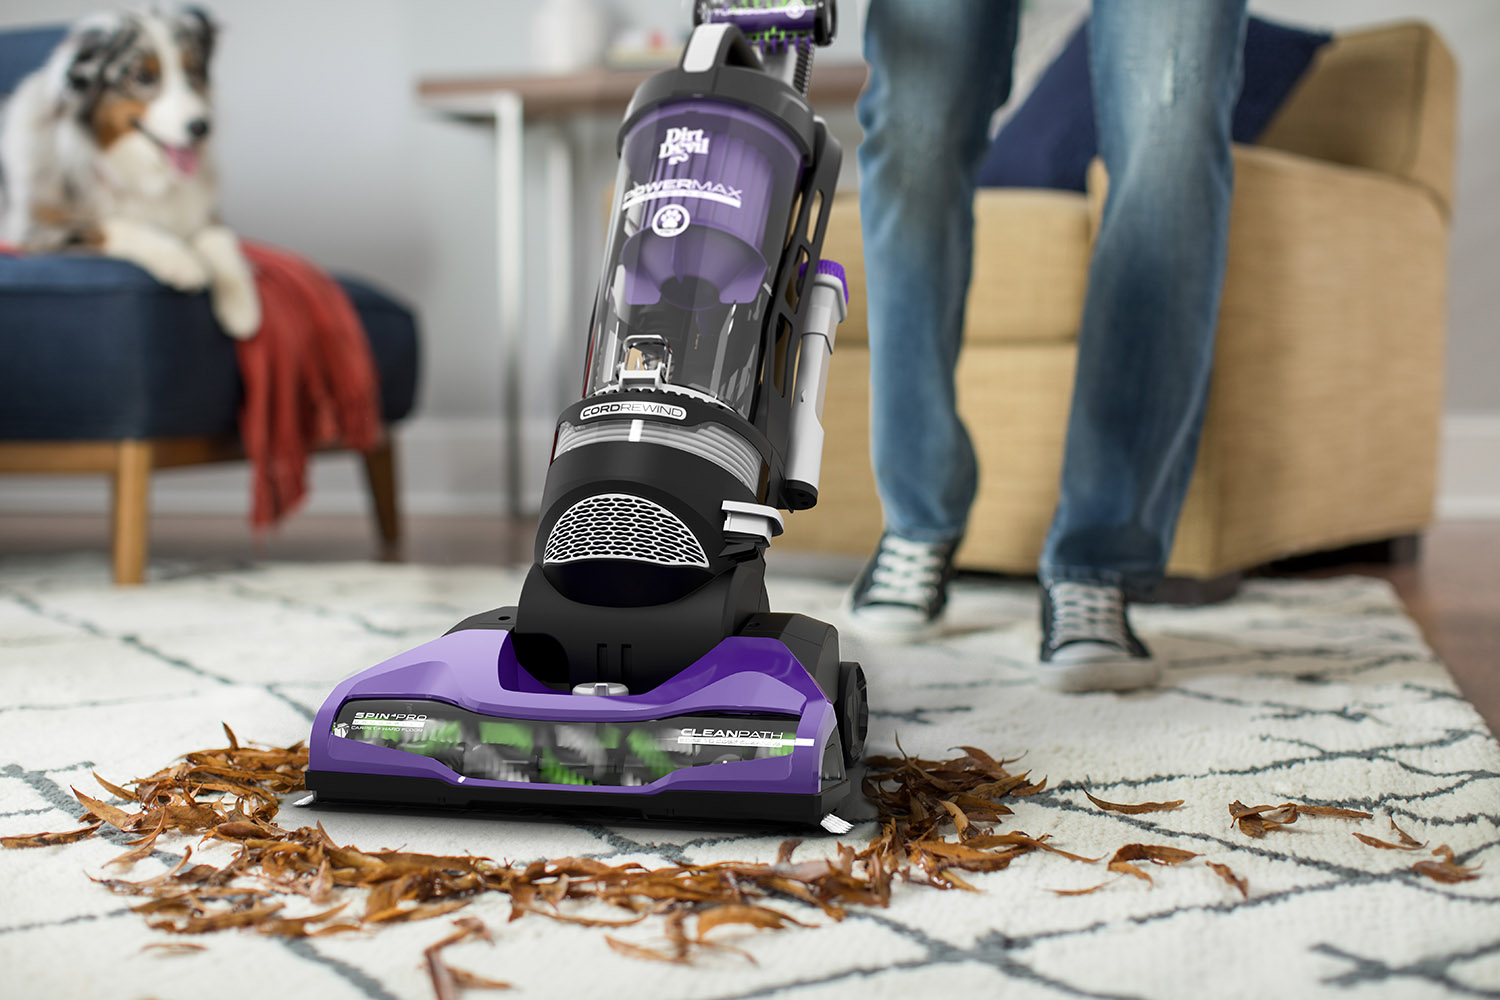 dirt-devil-cgi-vacuum.jpg